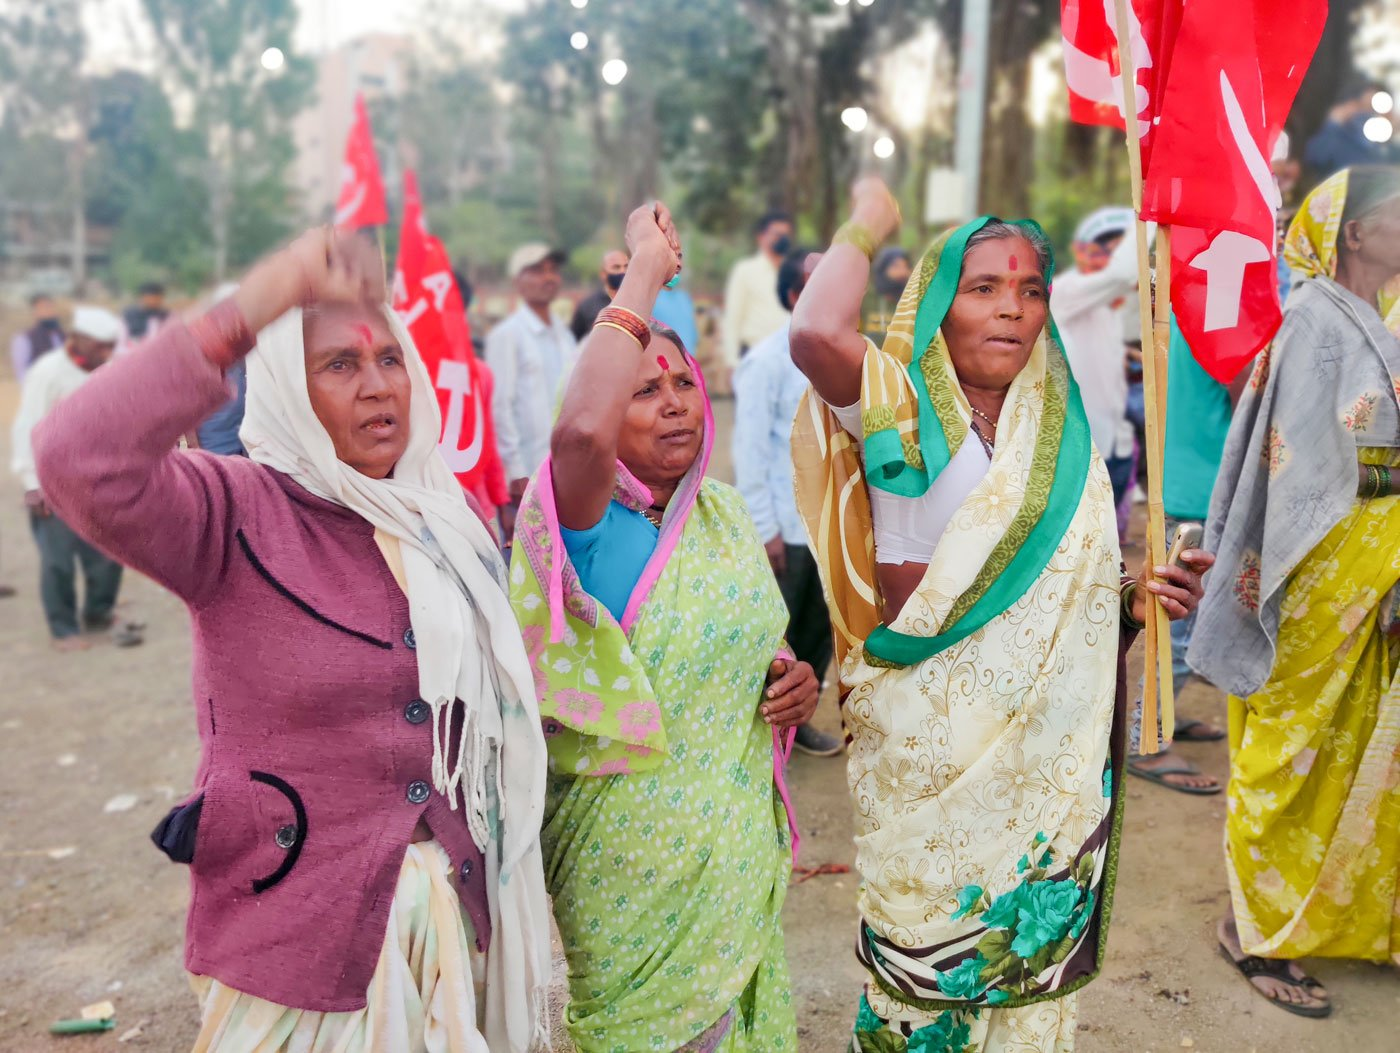 Mangal (right) is more outspoken, Mirabai (middle) is relatively shy, but both women farmers know exactly why they and the other farmers are protesting, and what the fallouts of the farm laws could be